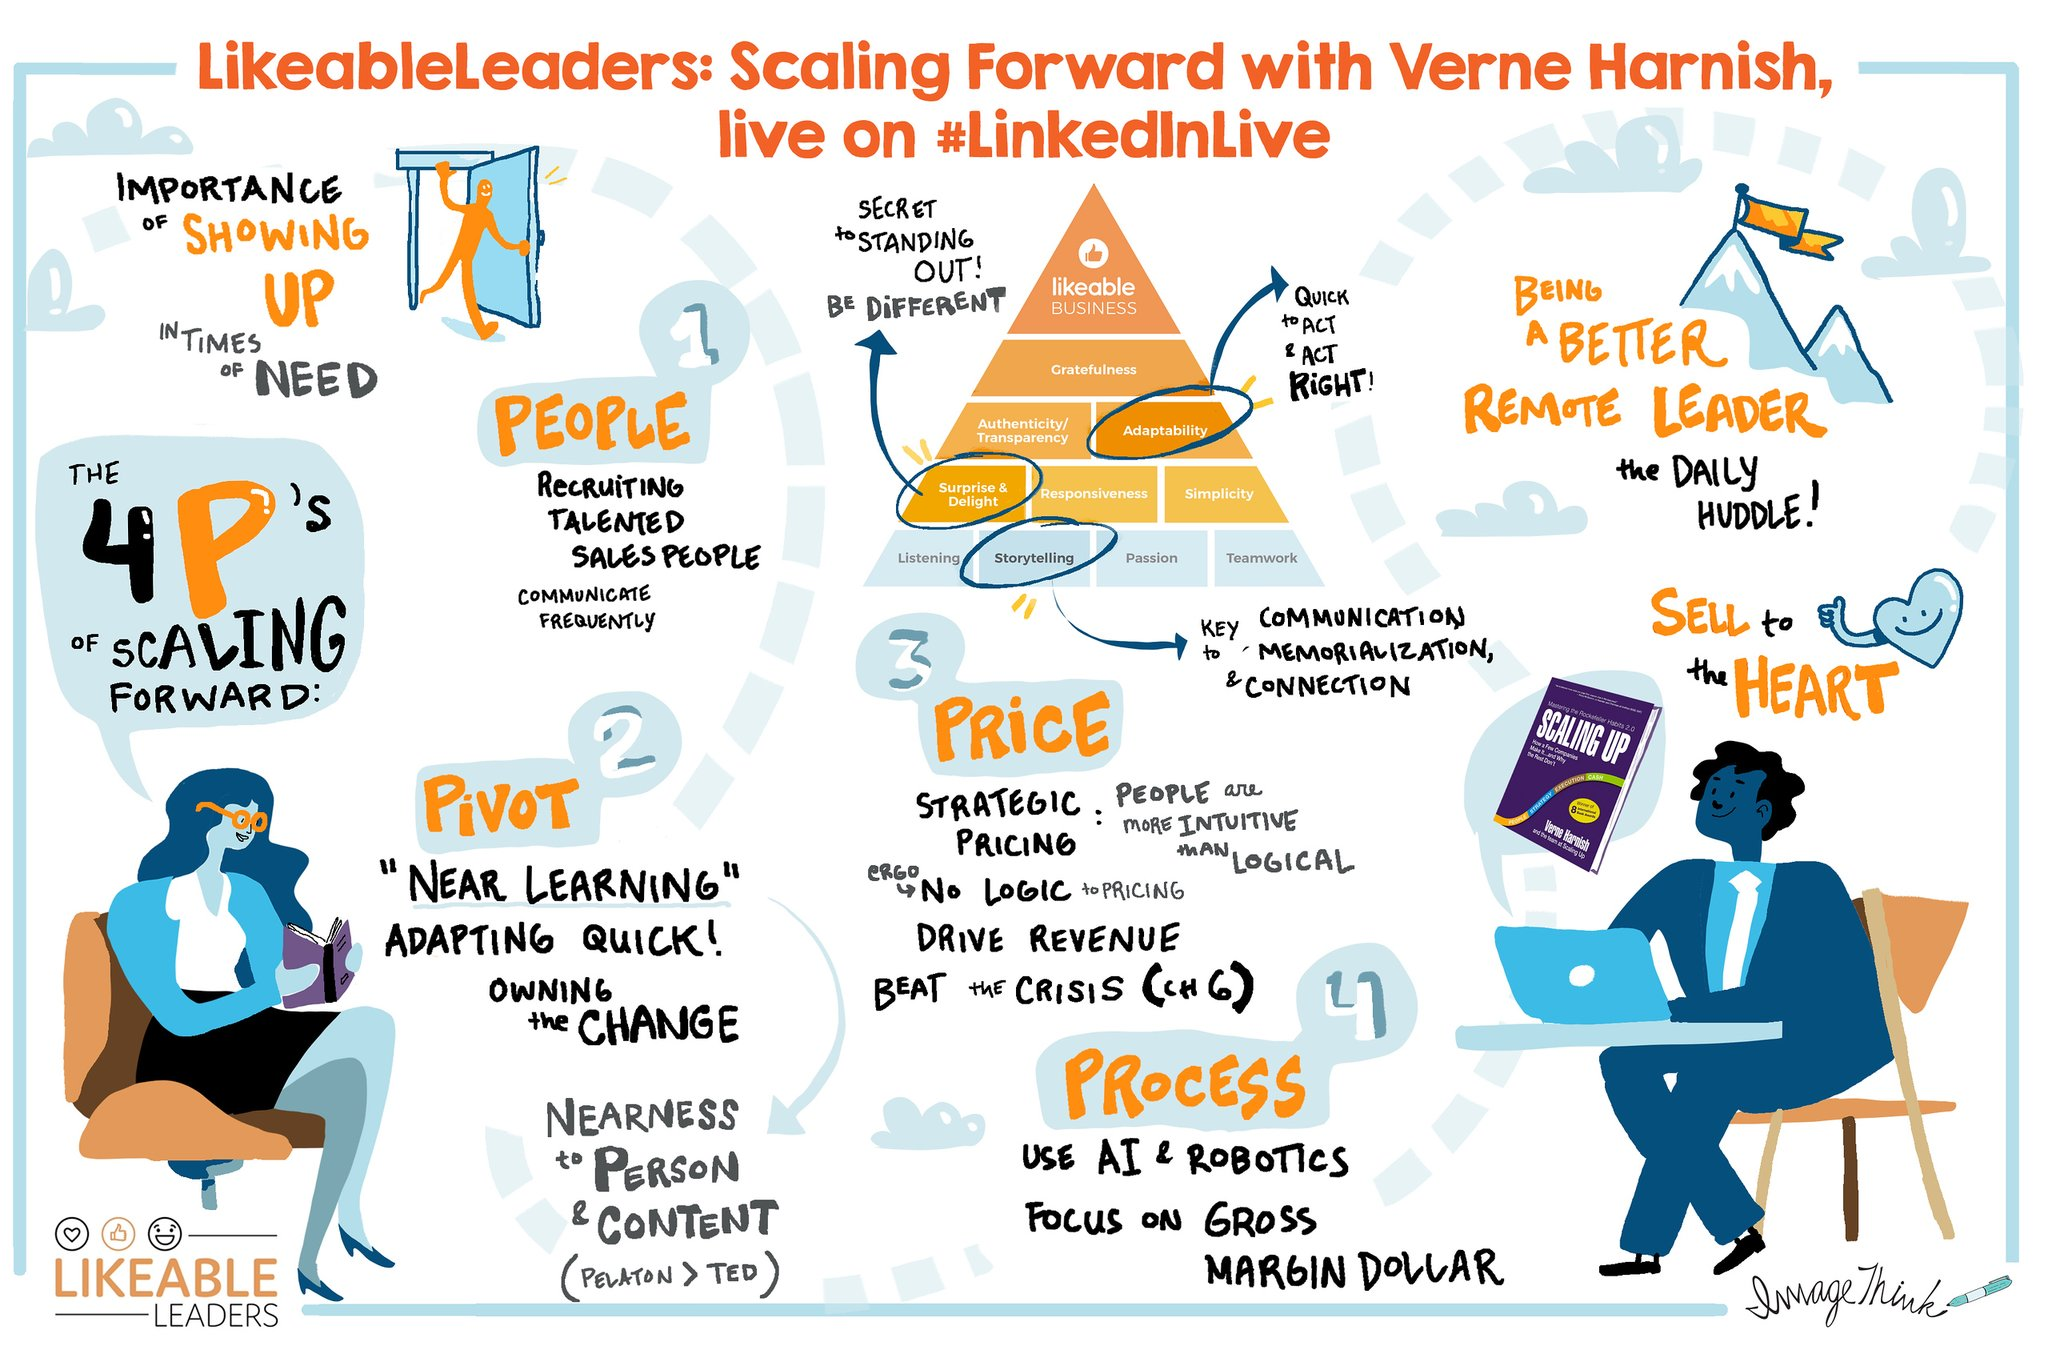 Are you practicing the 4Ps of #scaling? Love these insights from our work with #likeablemedia and Dave Kerpen's #LikeableLeaders streams. https://t.co/F57q55R4Pk